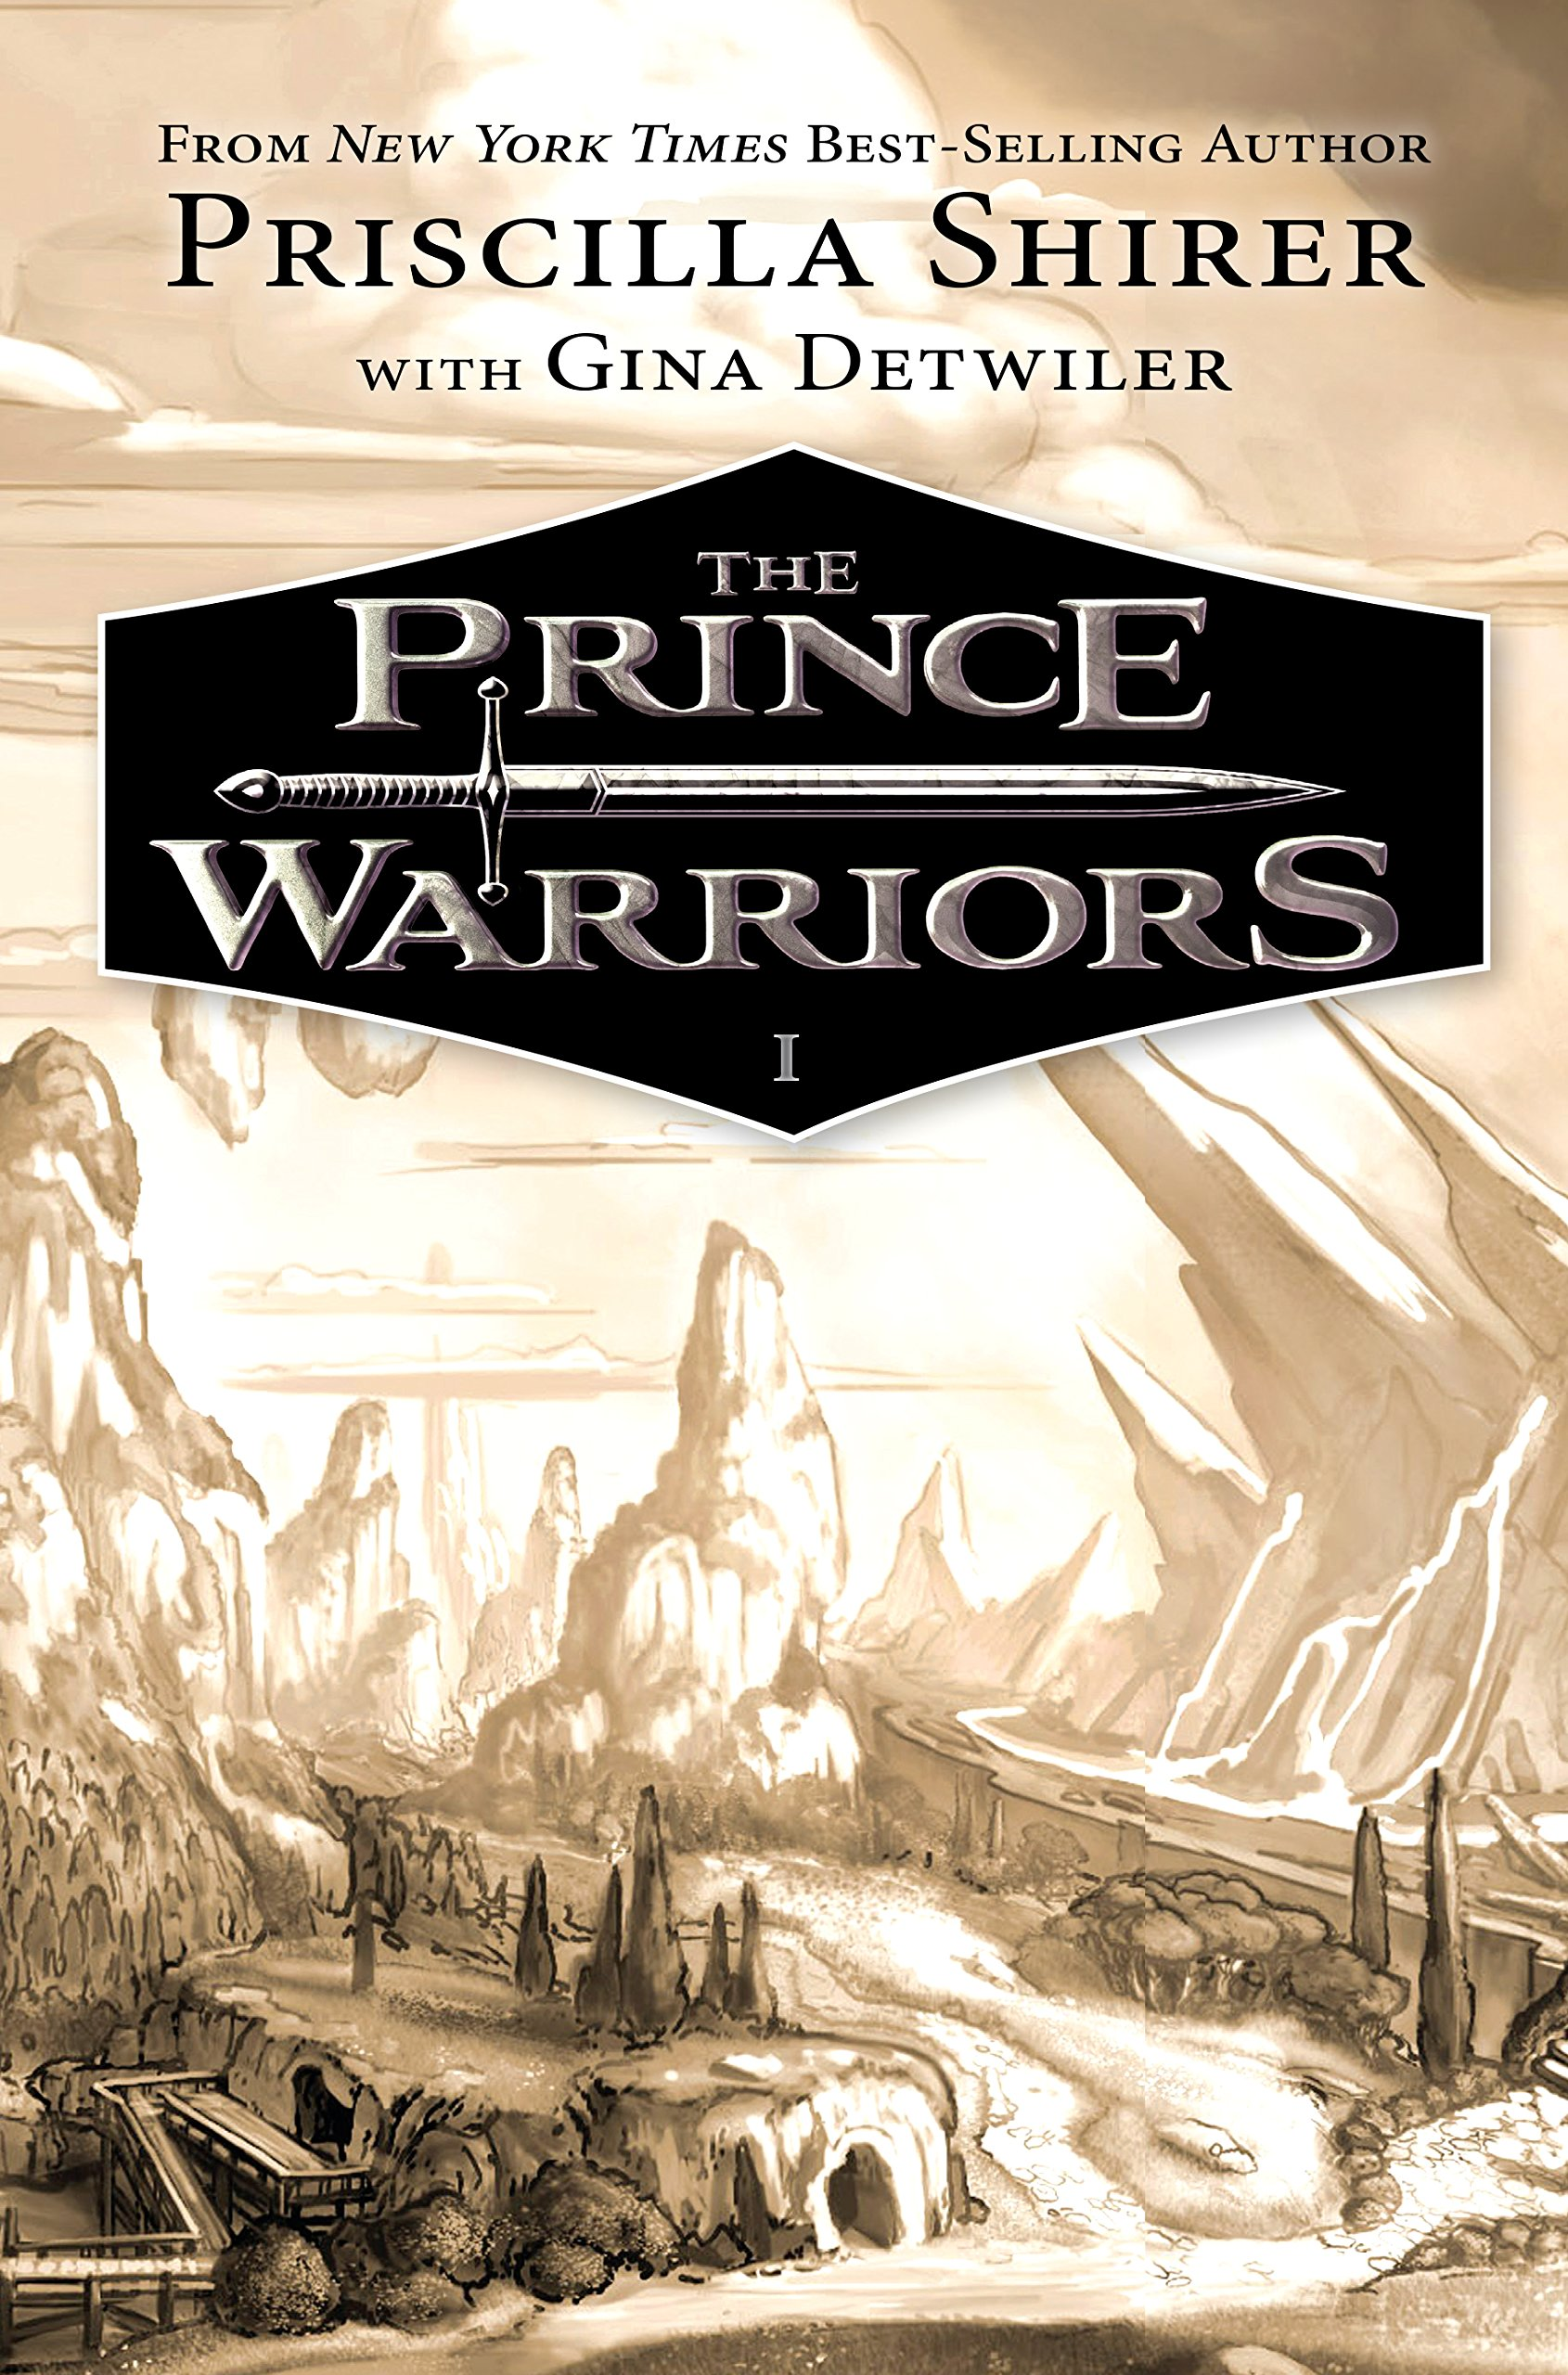 Amazon.com: The Prince Warriors (9781433690198): Shirer, Priscilla,  Detwiler, Gina: Books